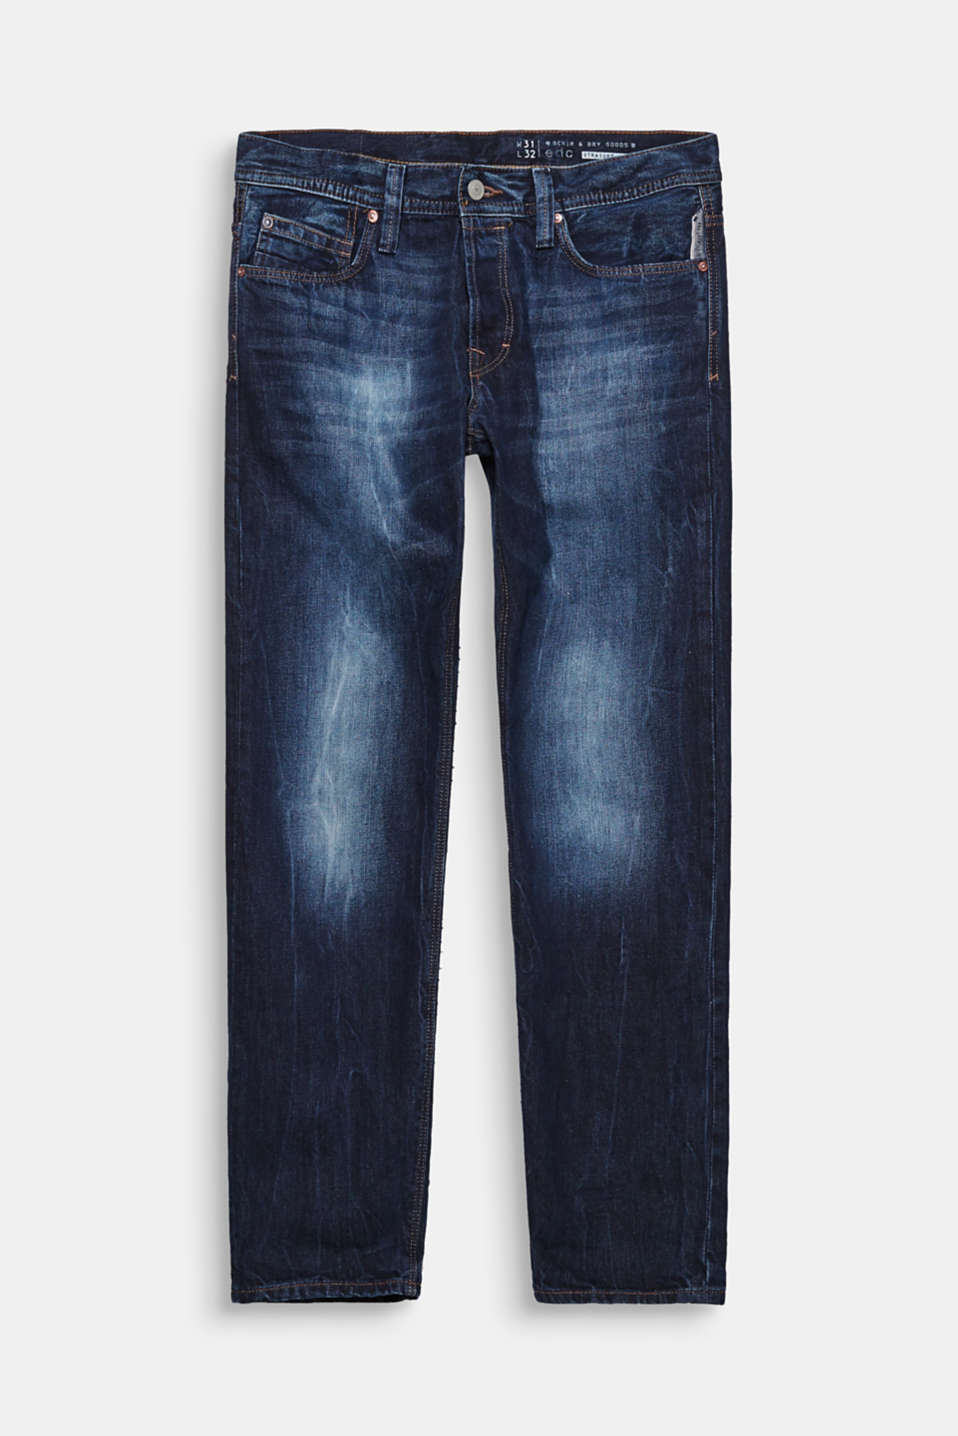 van non-stretchy denim. Coole basic jeans in recht 5-pocket-model